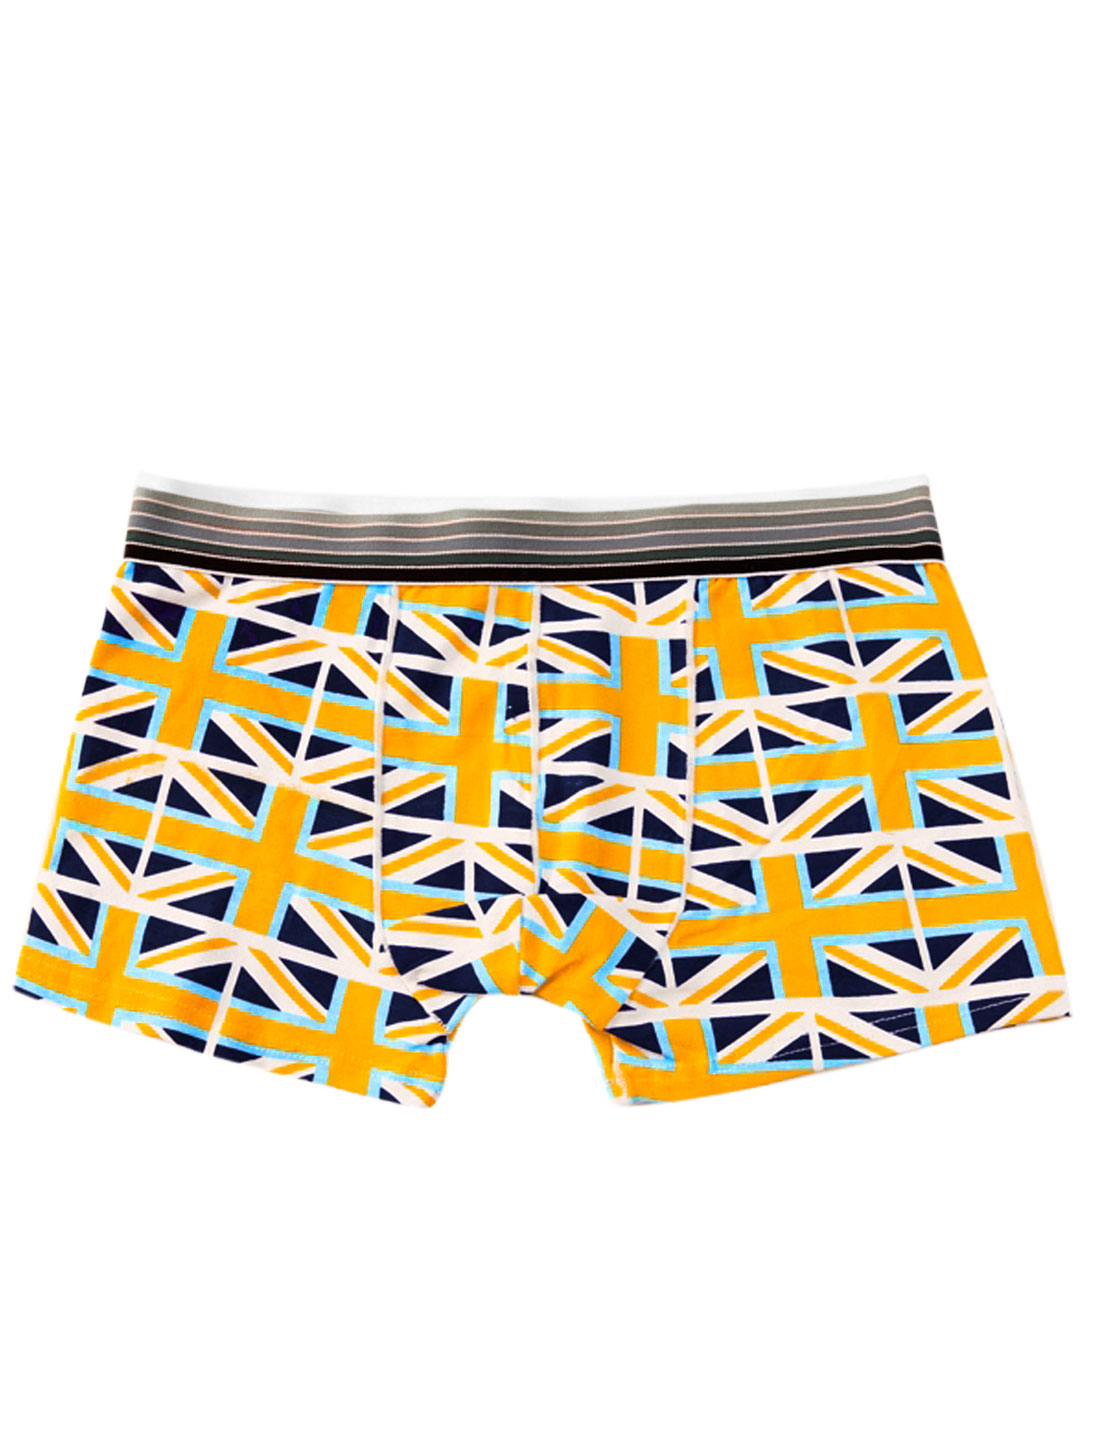 Men Elastic Waistband Union Flag Pattern Fashion Boxer Briefs Navy Blue Yellow W30